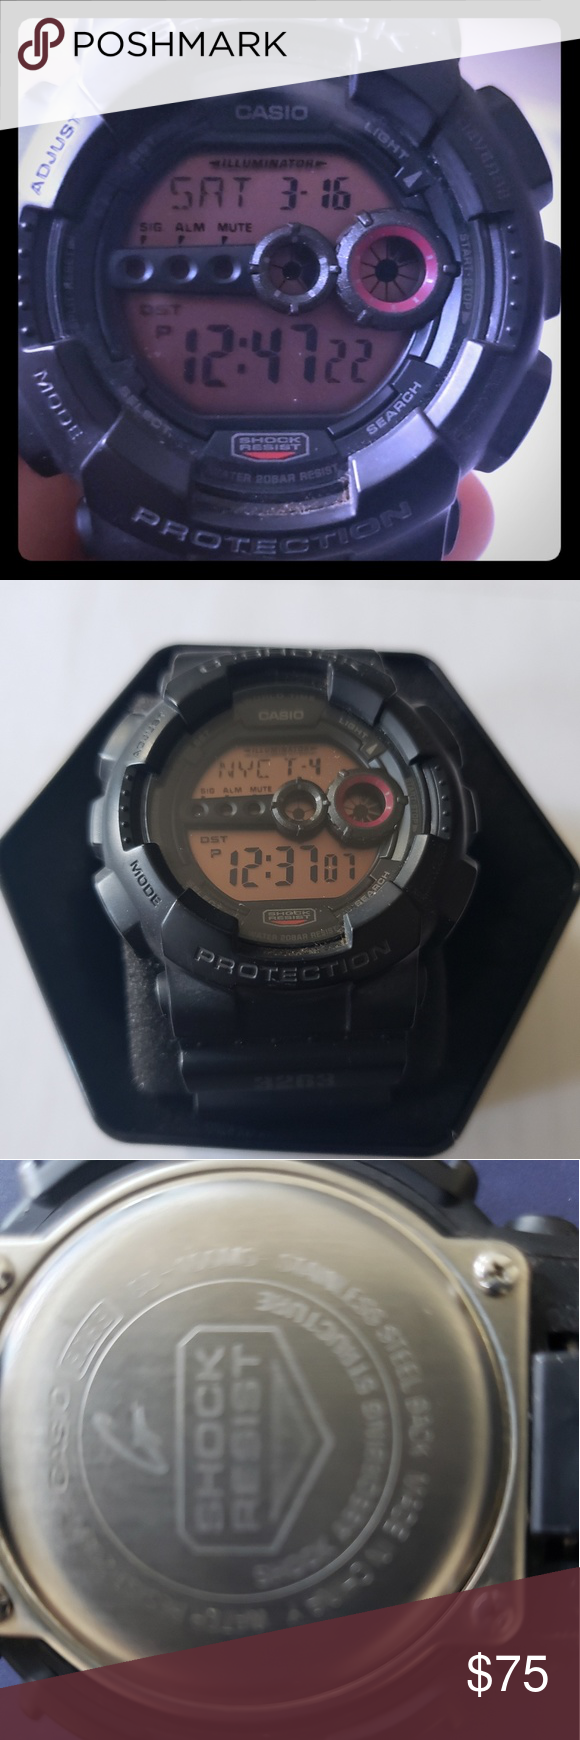 size 40 7b2b3 99f00 G-shock Casio 3263 Like new black g shock Comes with ...